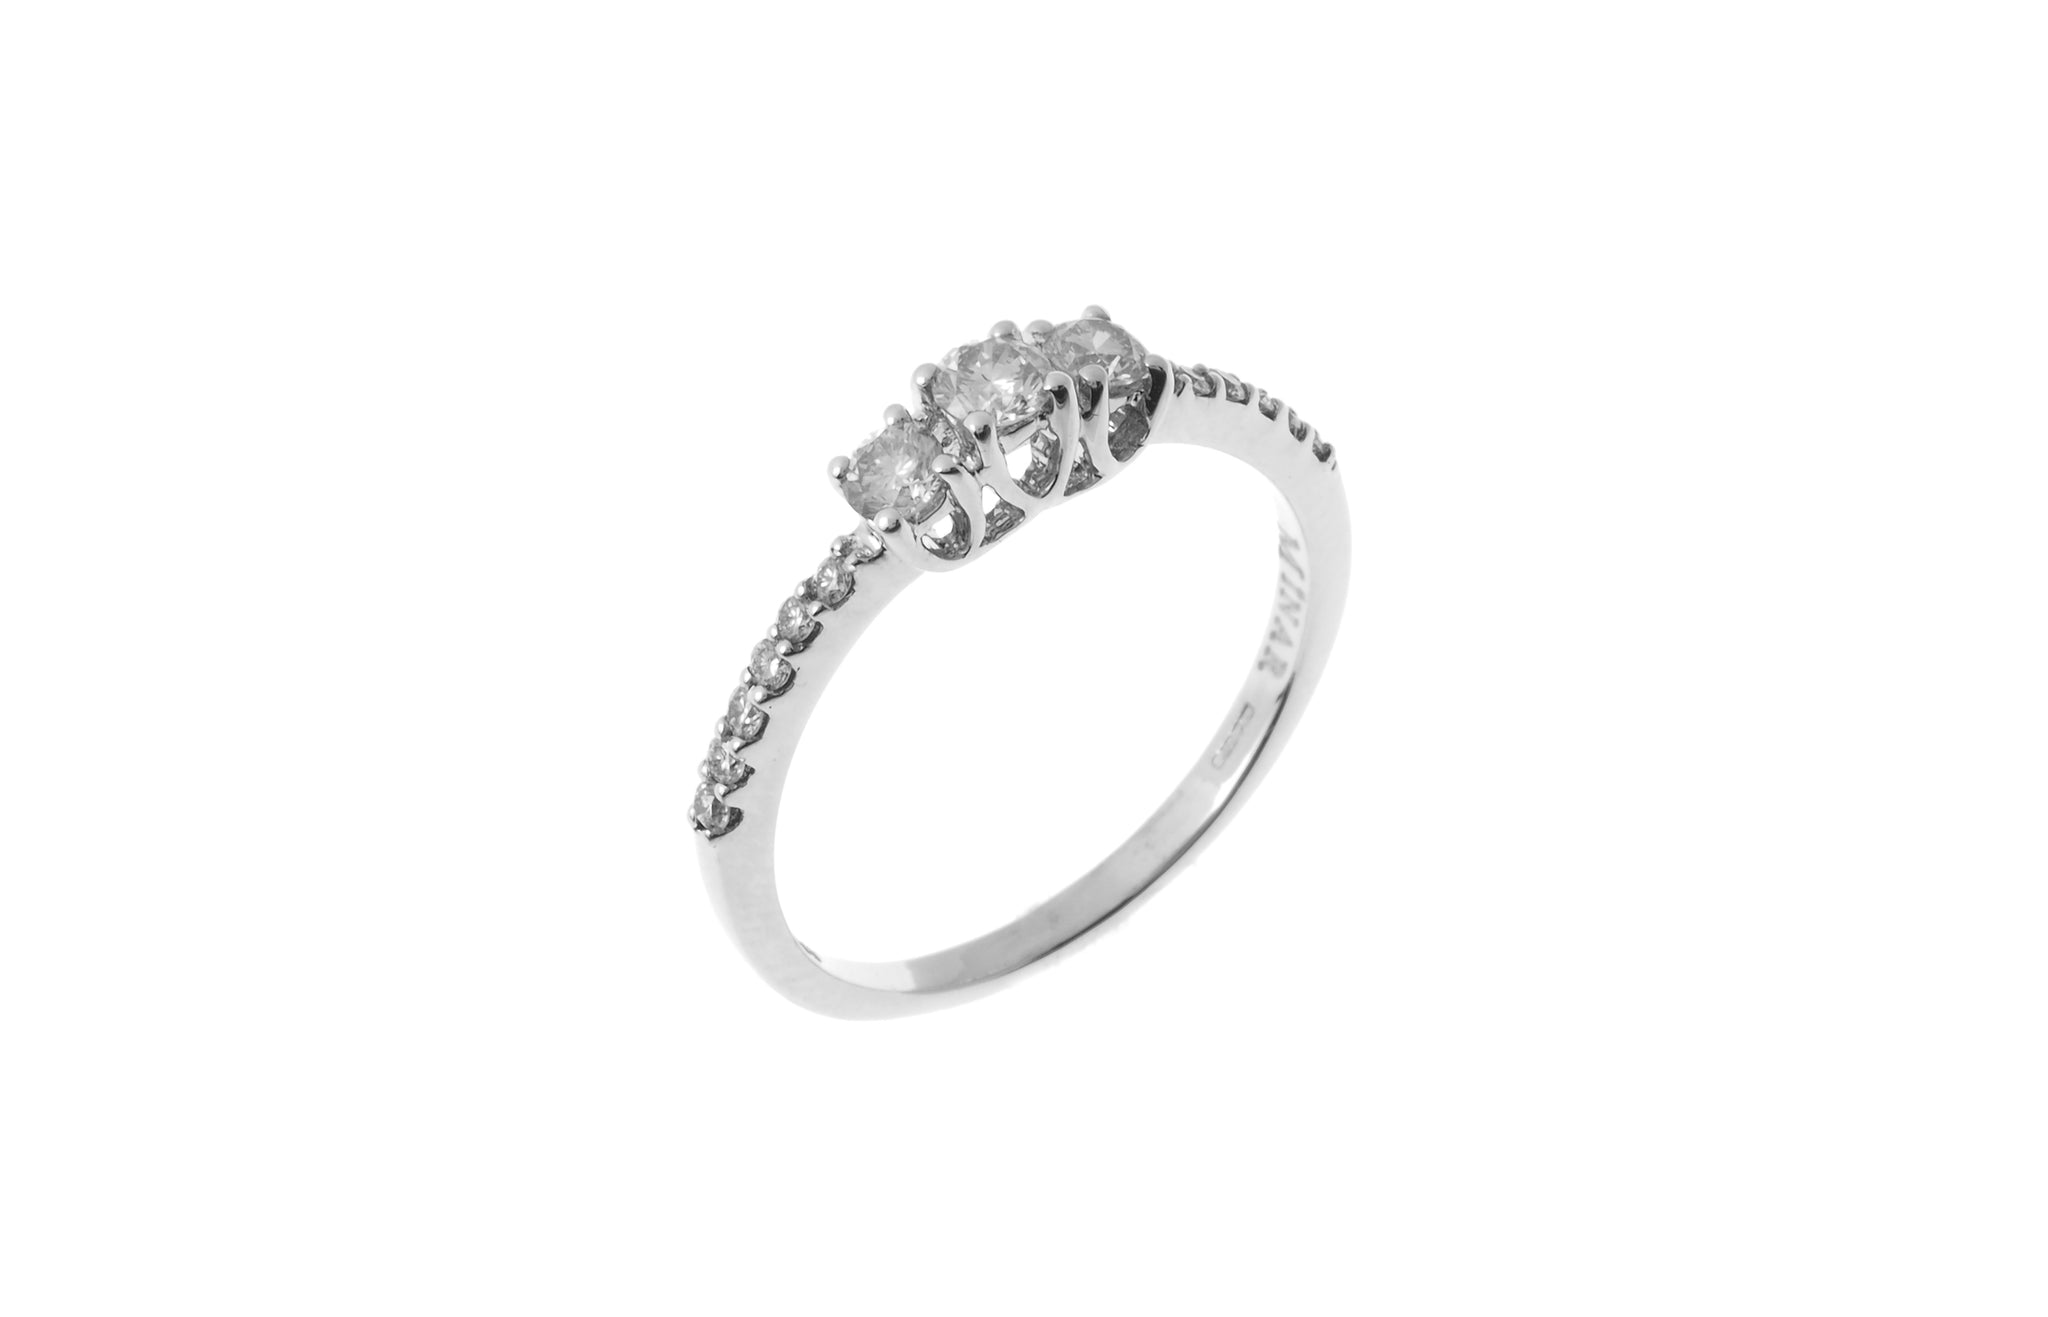 18ct White Gold Diamond Trilogy Ring (MCS2831)